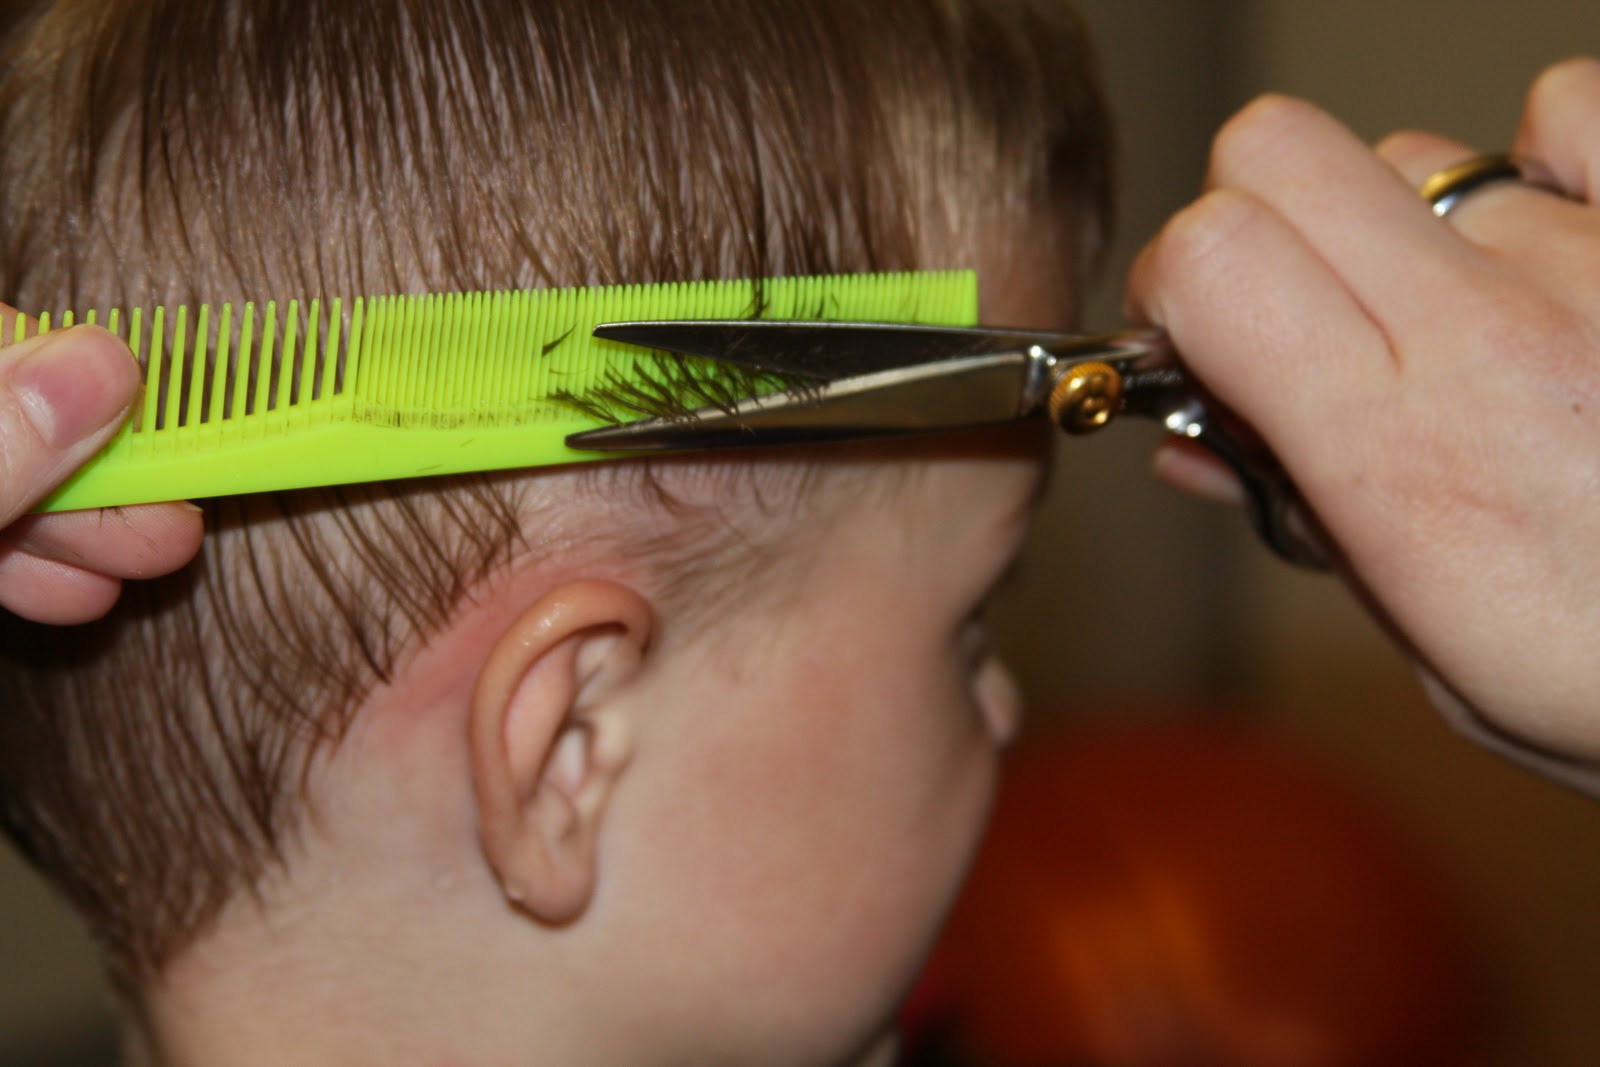 Best ideas about How To Cut Boys Hair With Scissors . Save or Pin How to cut boys hair Shwin&Shwin Now.